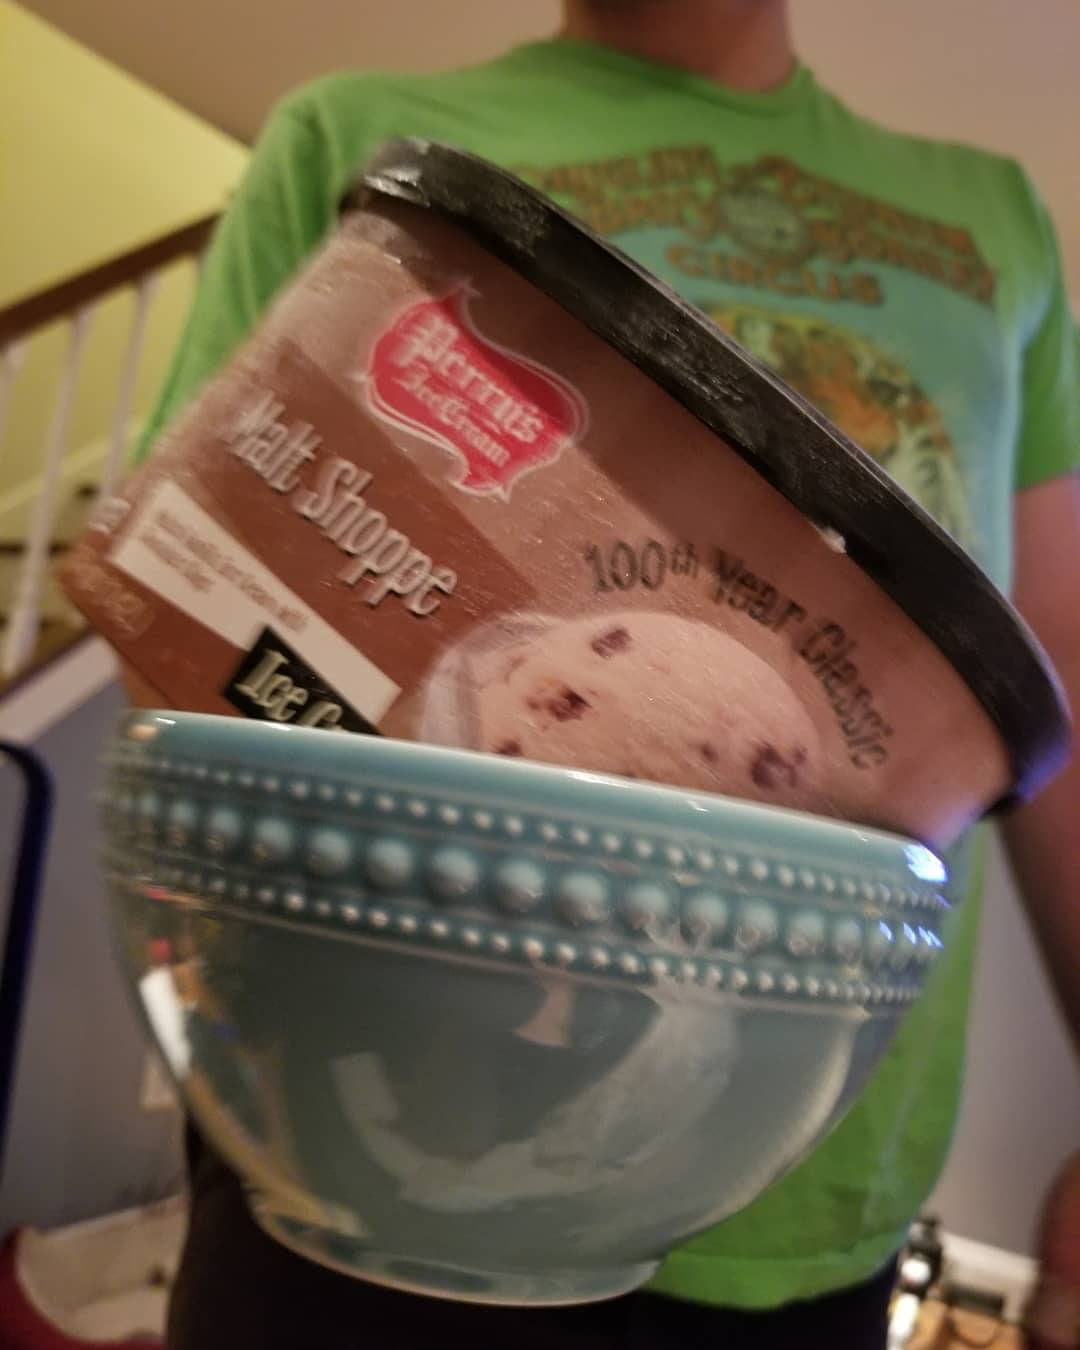 boyfriend brought the ice cream container in a bowl